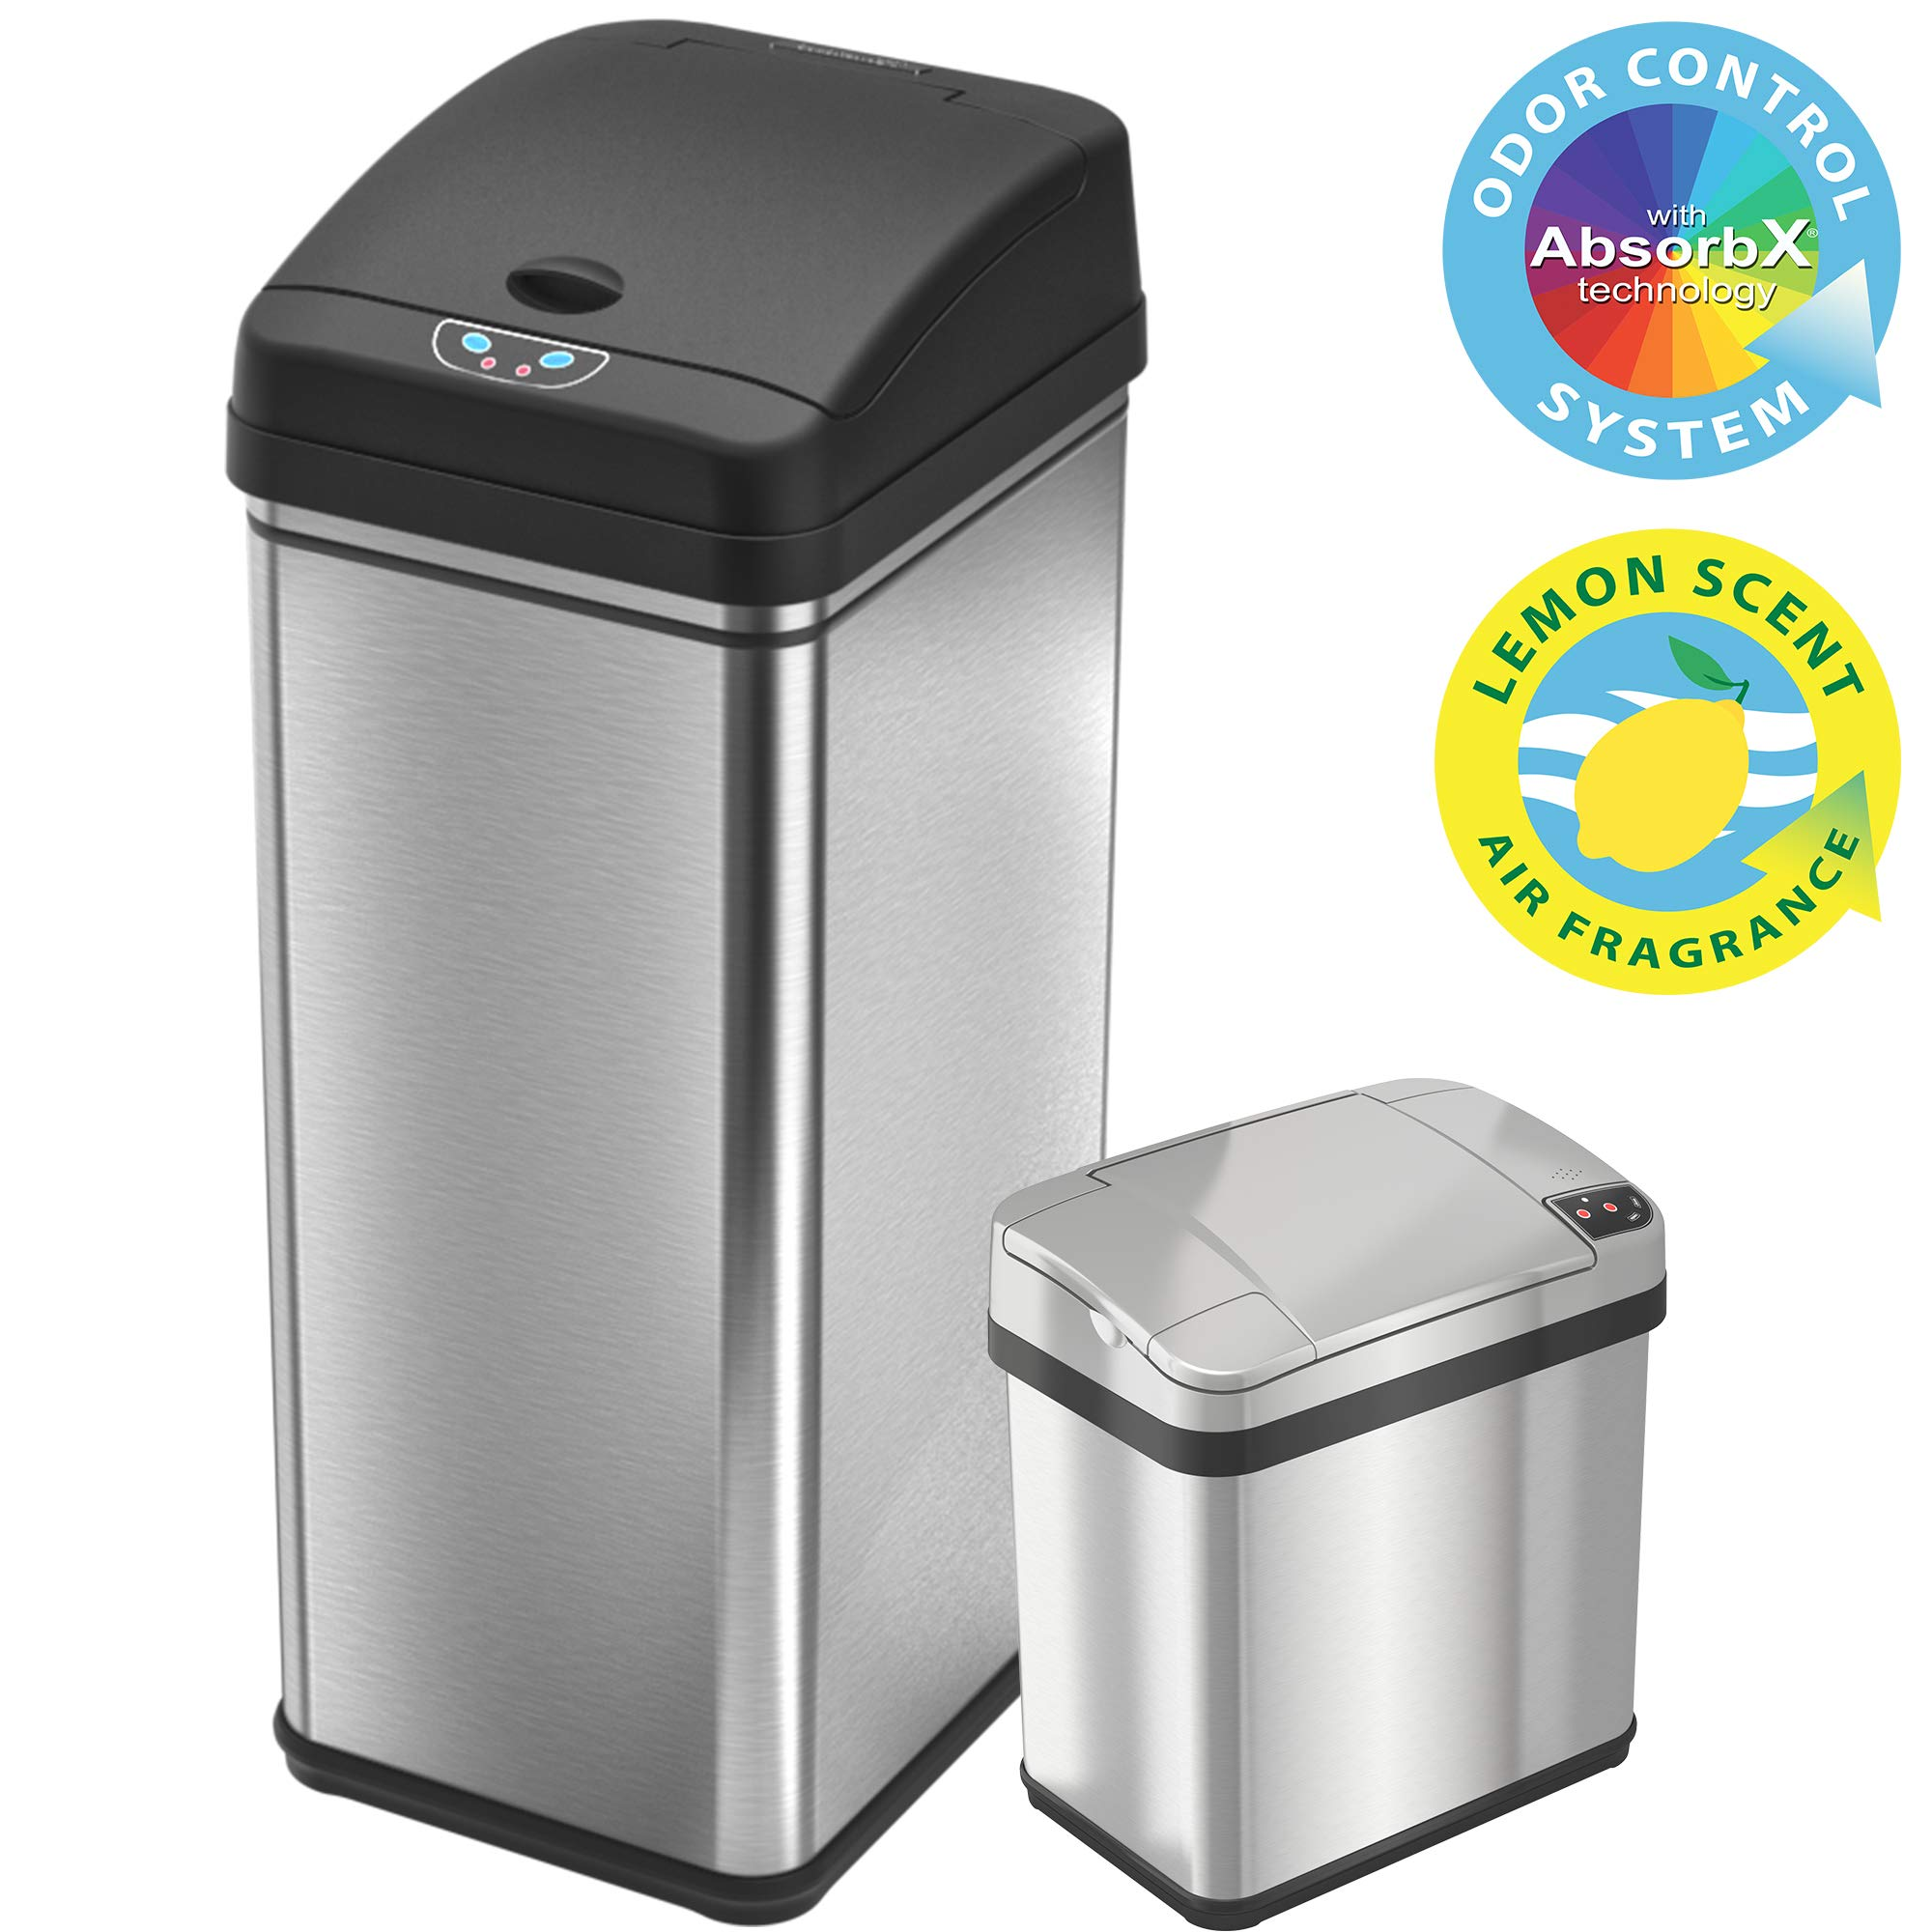 iTouchless 13 Gallon and 2.5 Gallon Sensor Trash Cans (Set of 2), Stainless Steel Bins for Kitchen and Bathroom, Odor Control System by iTouchless